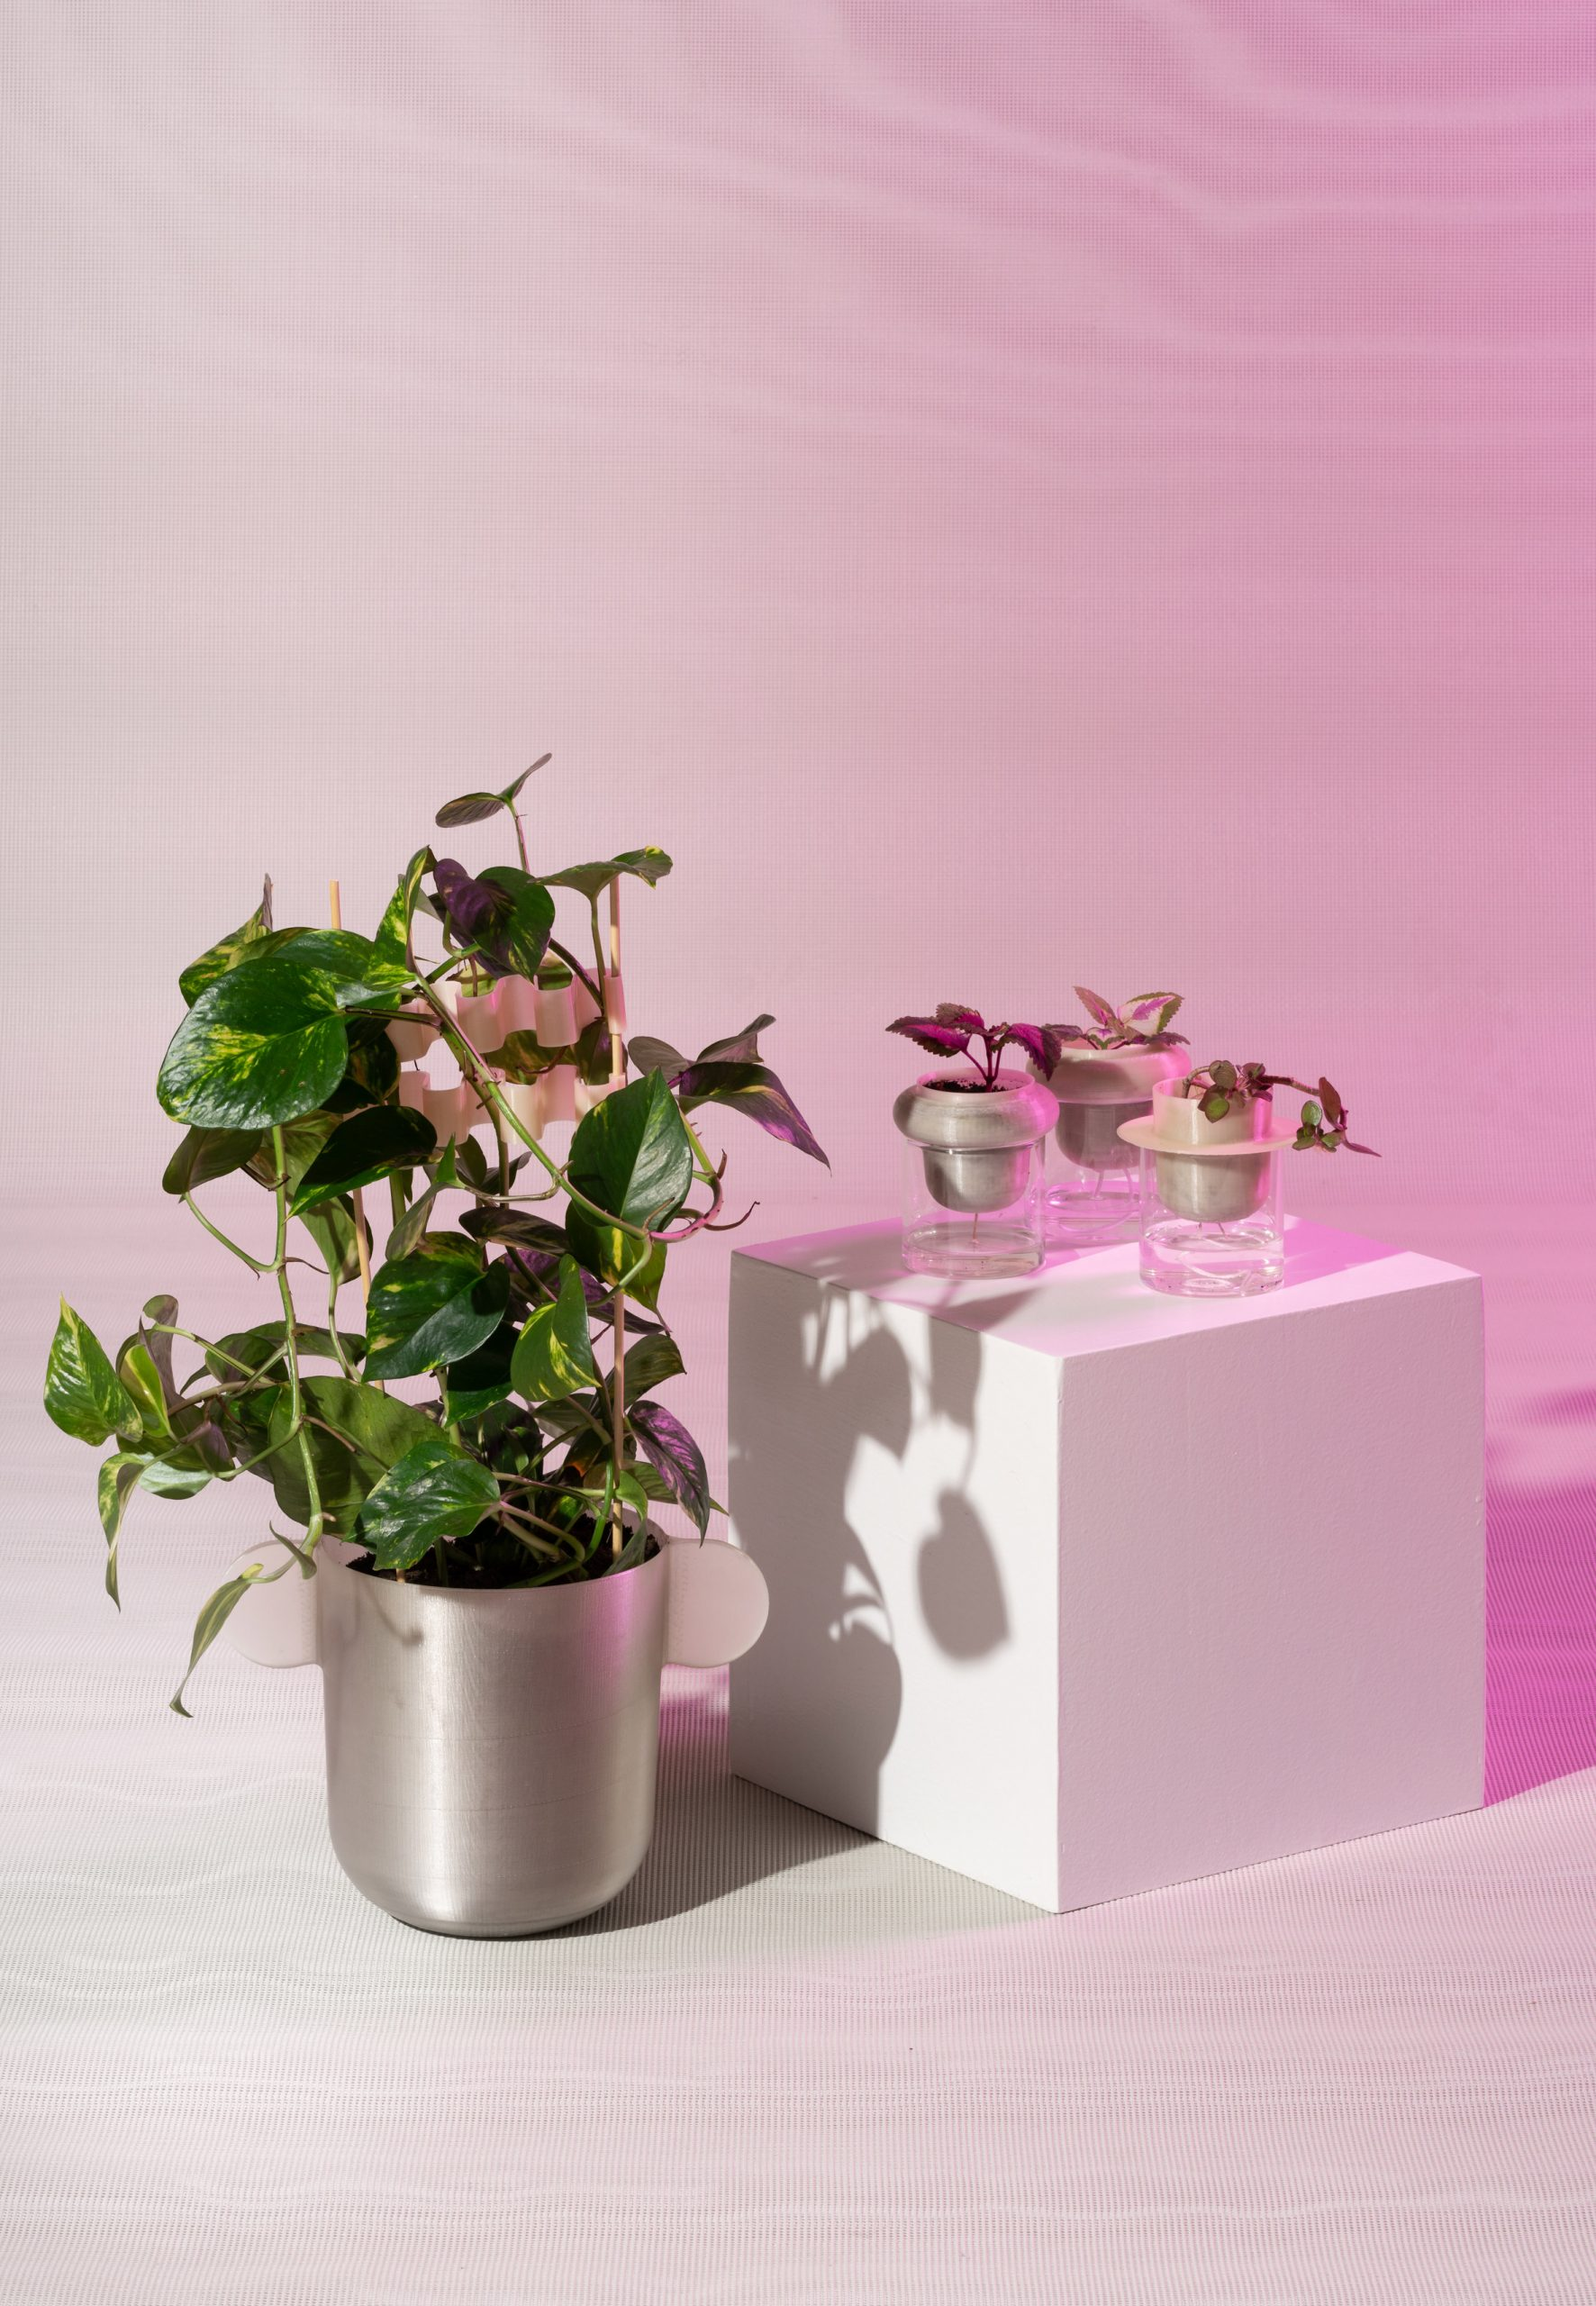 Plant pots and flower clips Metabolic Processes for Leftovers exhibition